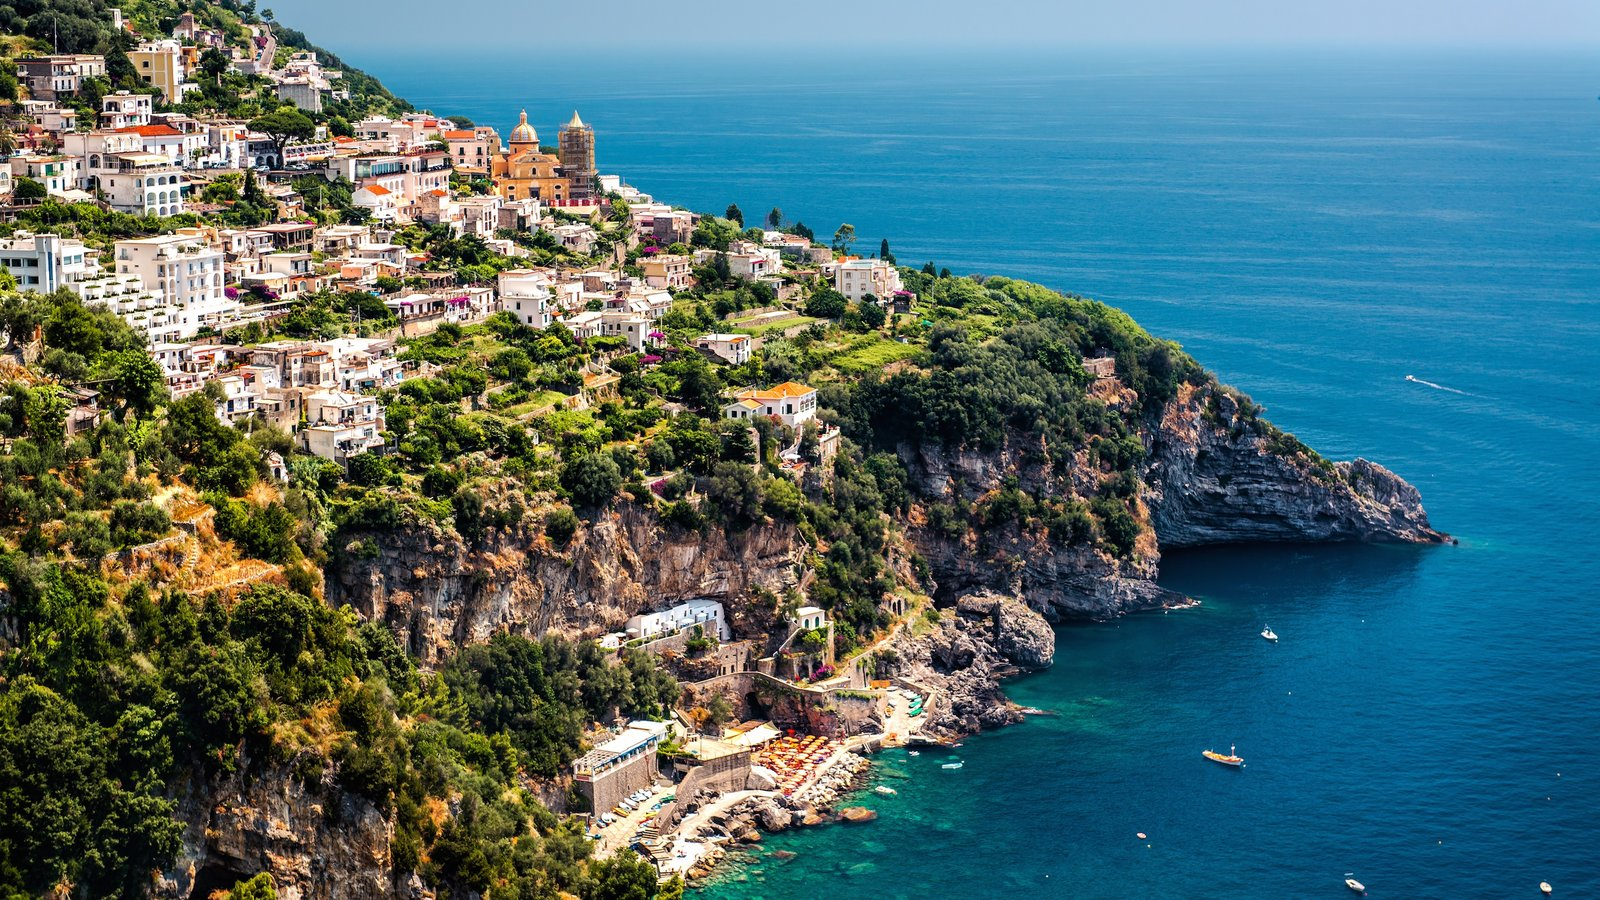 Salerno showing a coastal town and rocky coastline